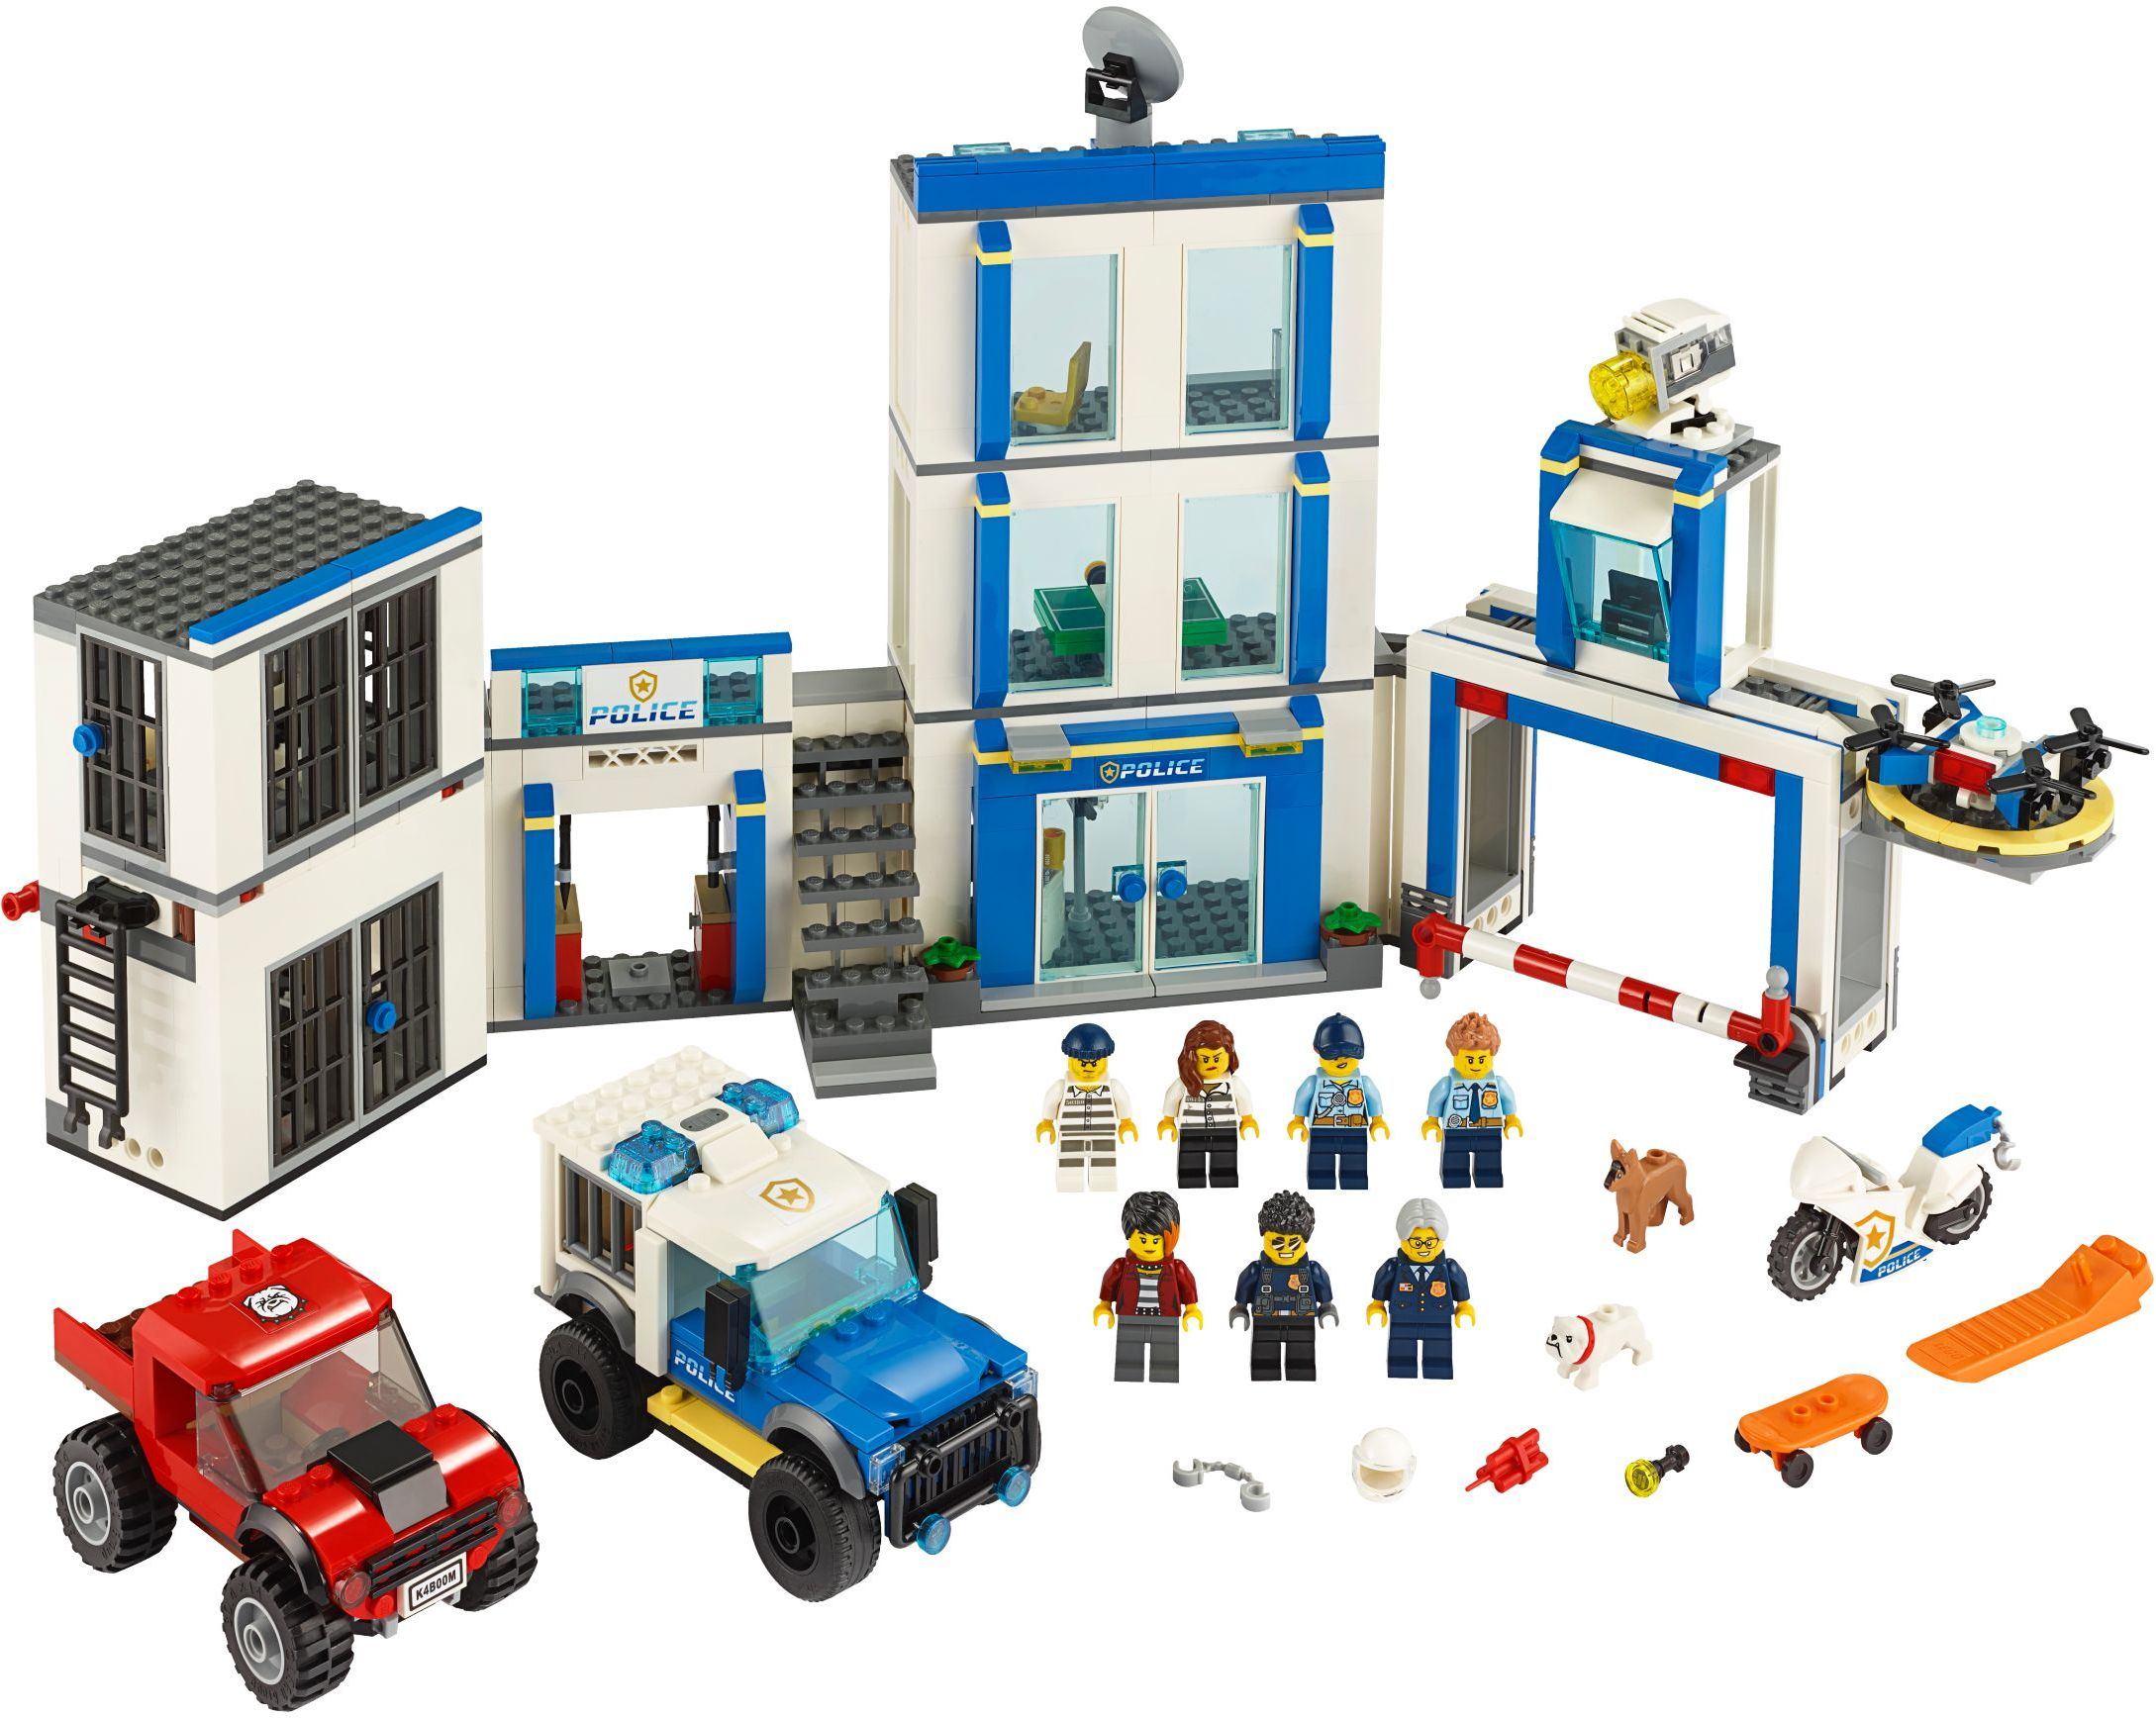 LEGO Real Life Heroes police station